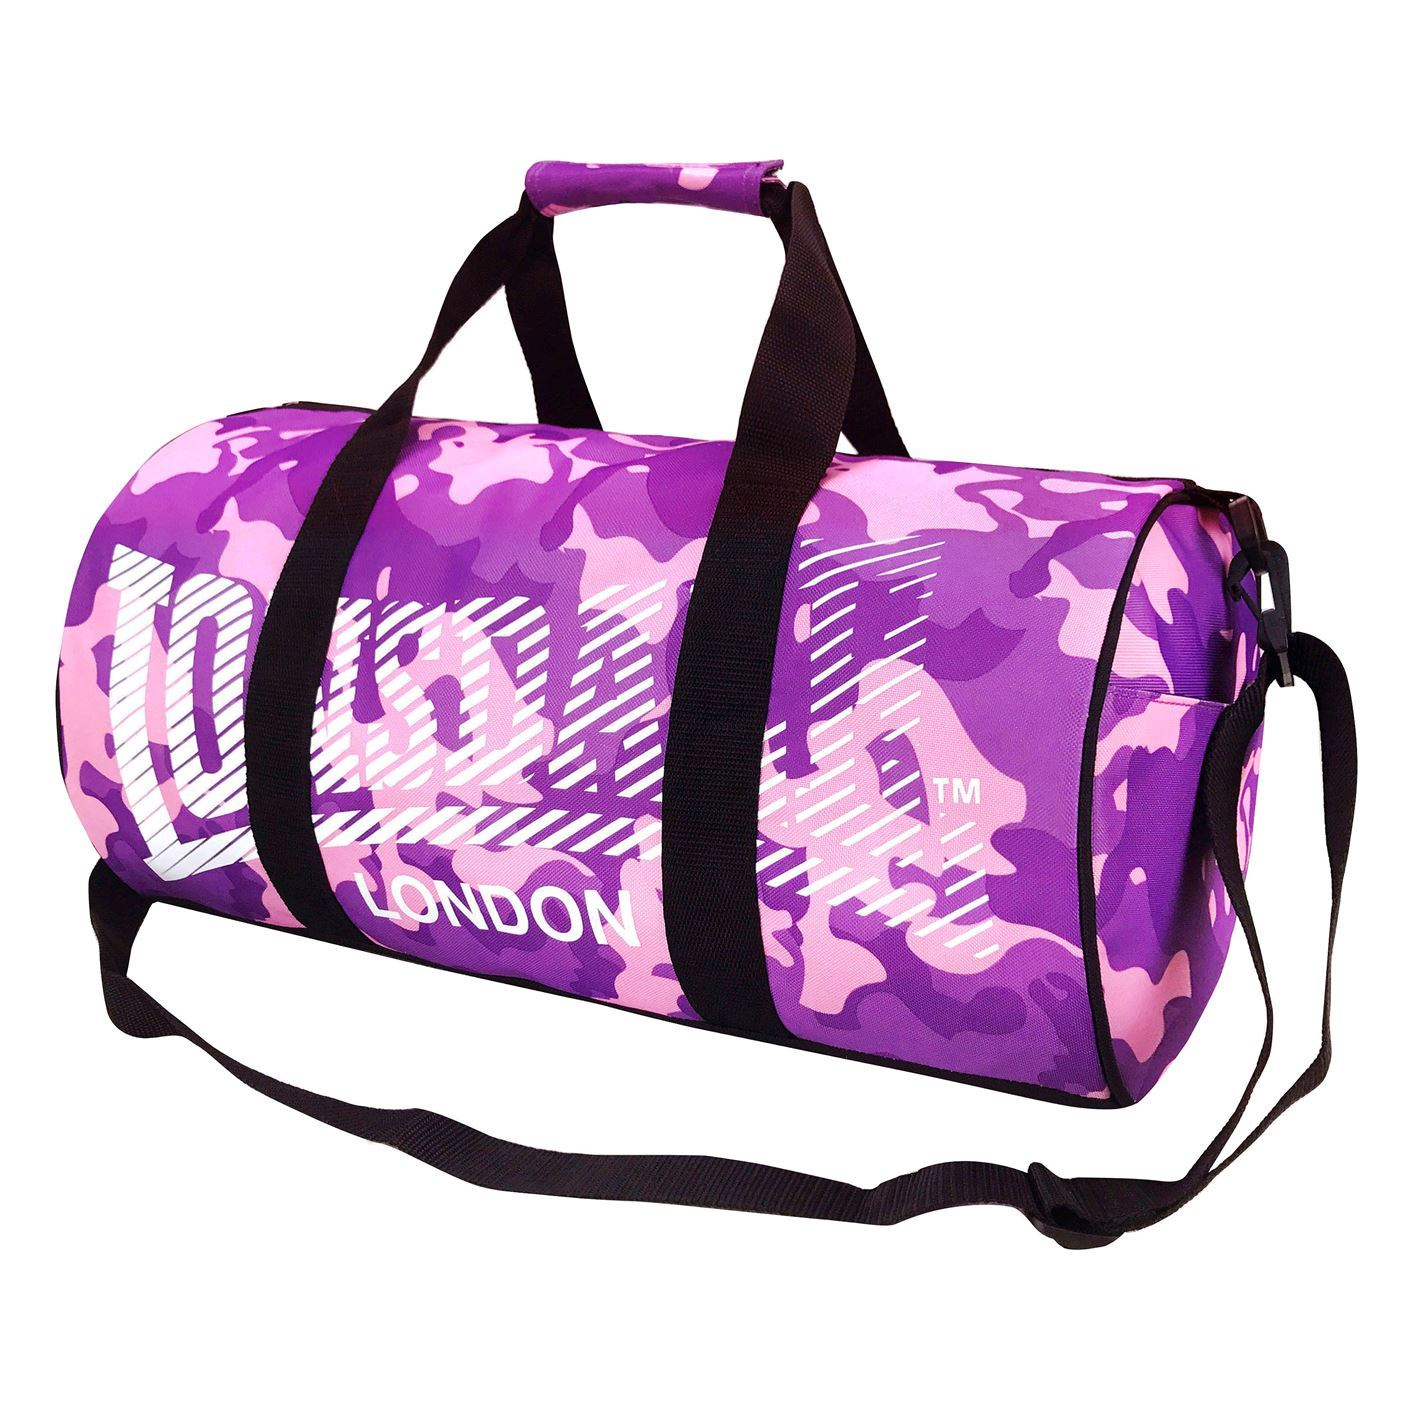 ... Lonsdale Barrel Bag Camouflage Pink Purple Sports Kit Holdall Carryall  Gymbag cce146acffabf